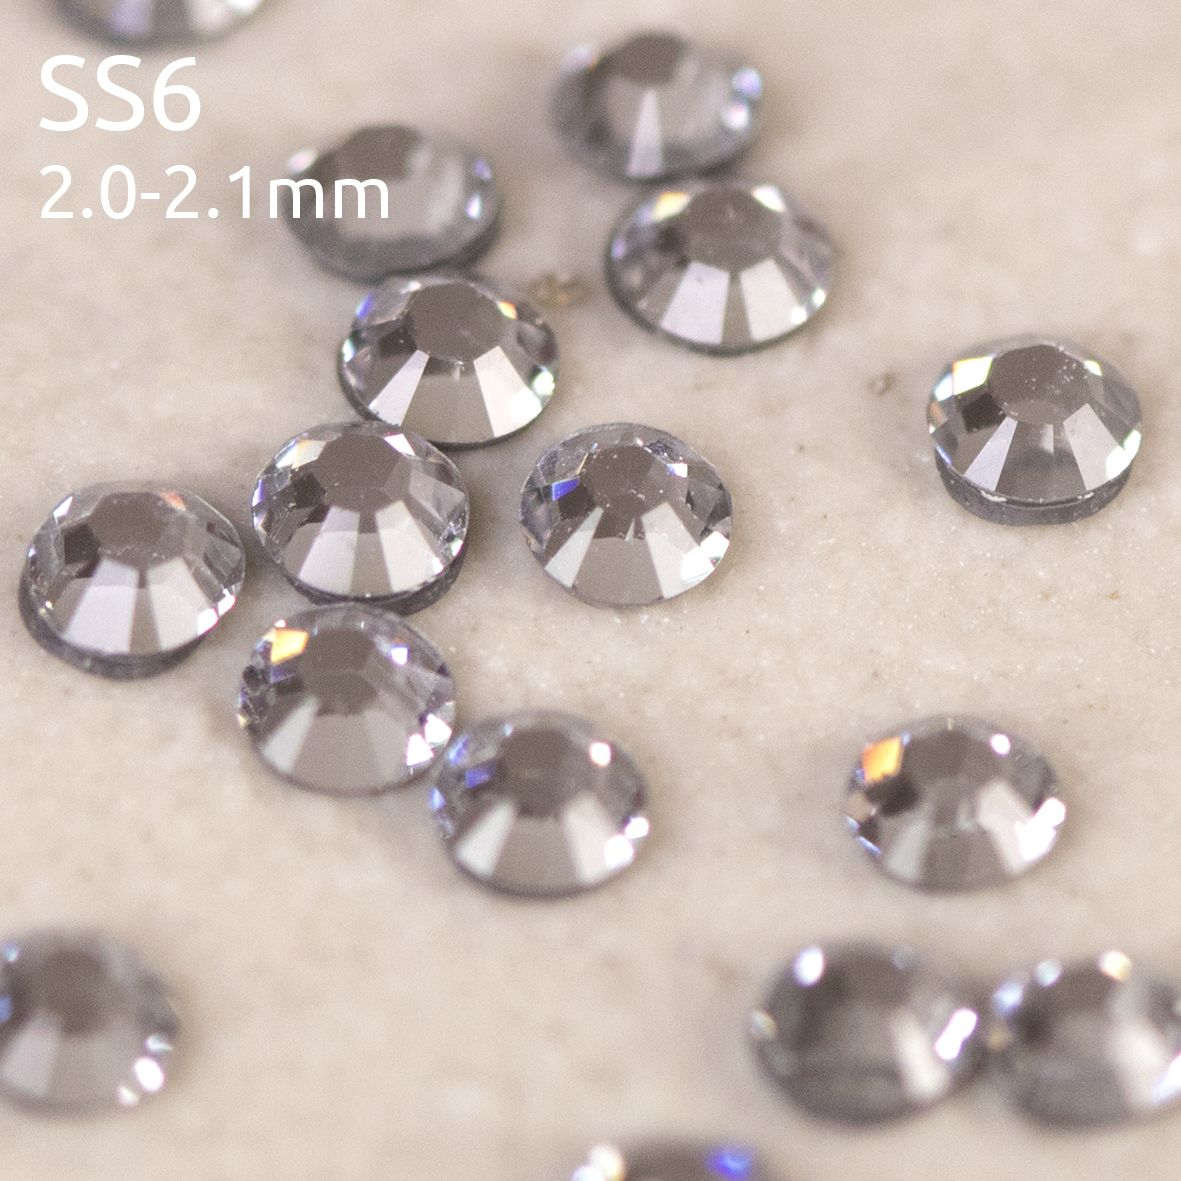 Swarovski ® Flatback Hot Fix SS6 (2mm) Crystals, Style 2028/2038 Xilion Rose Cut category image